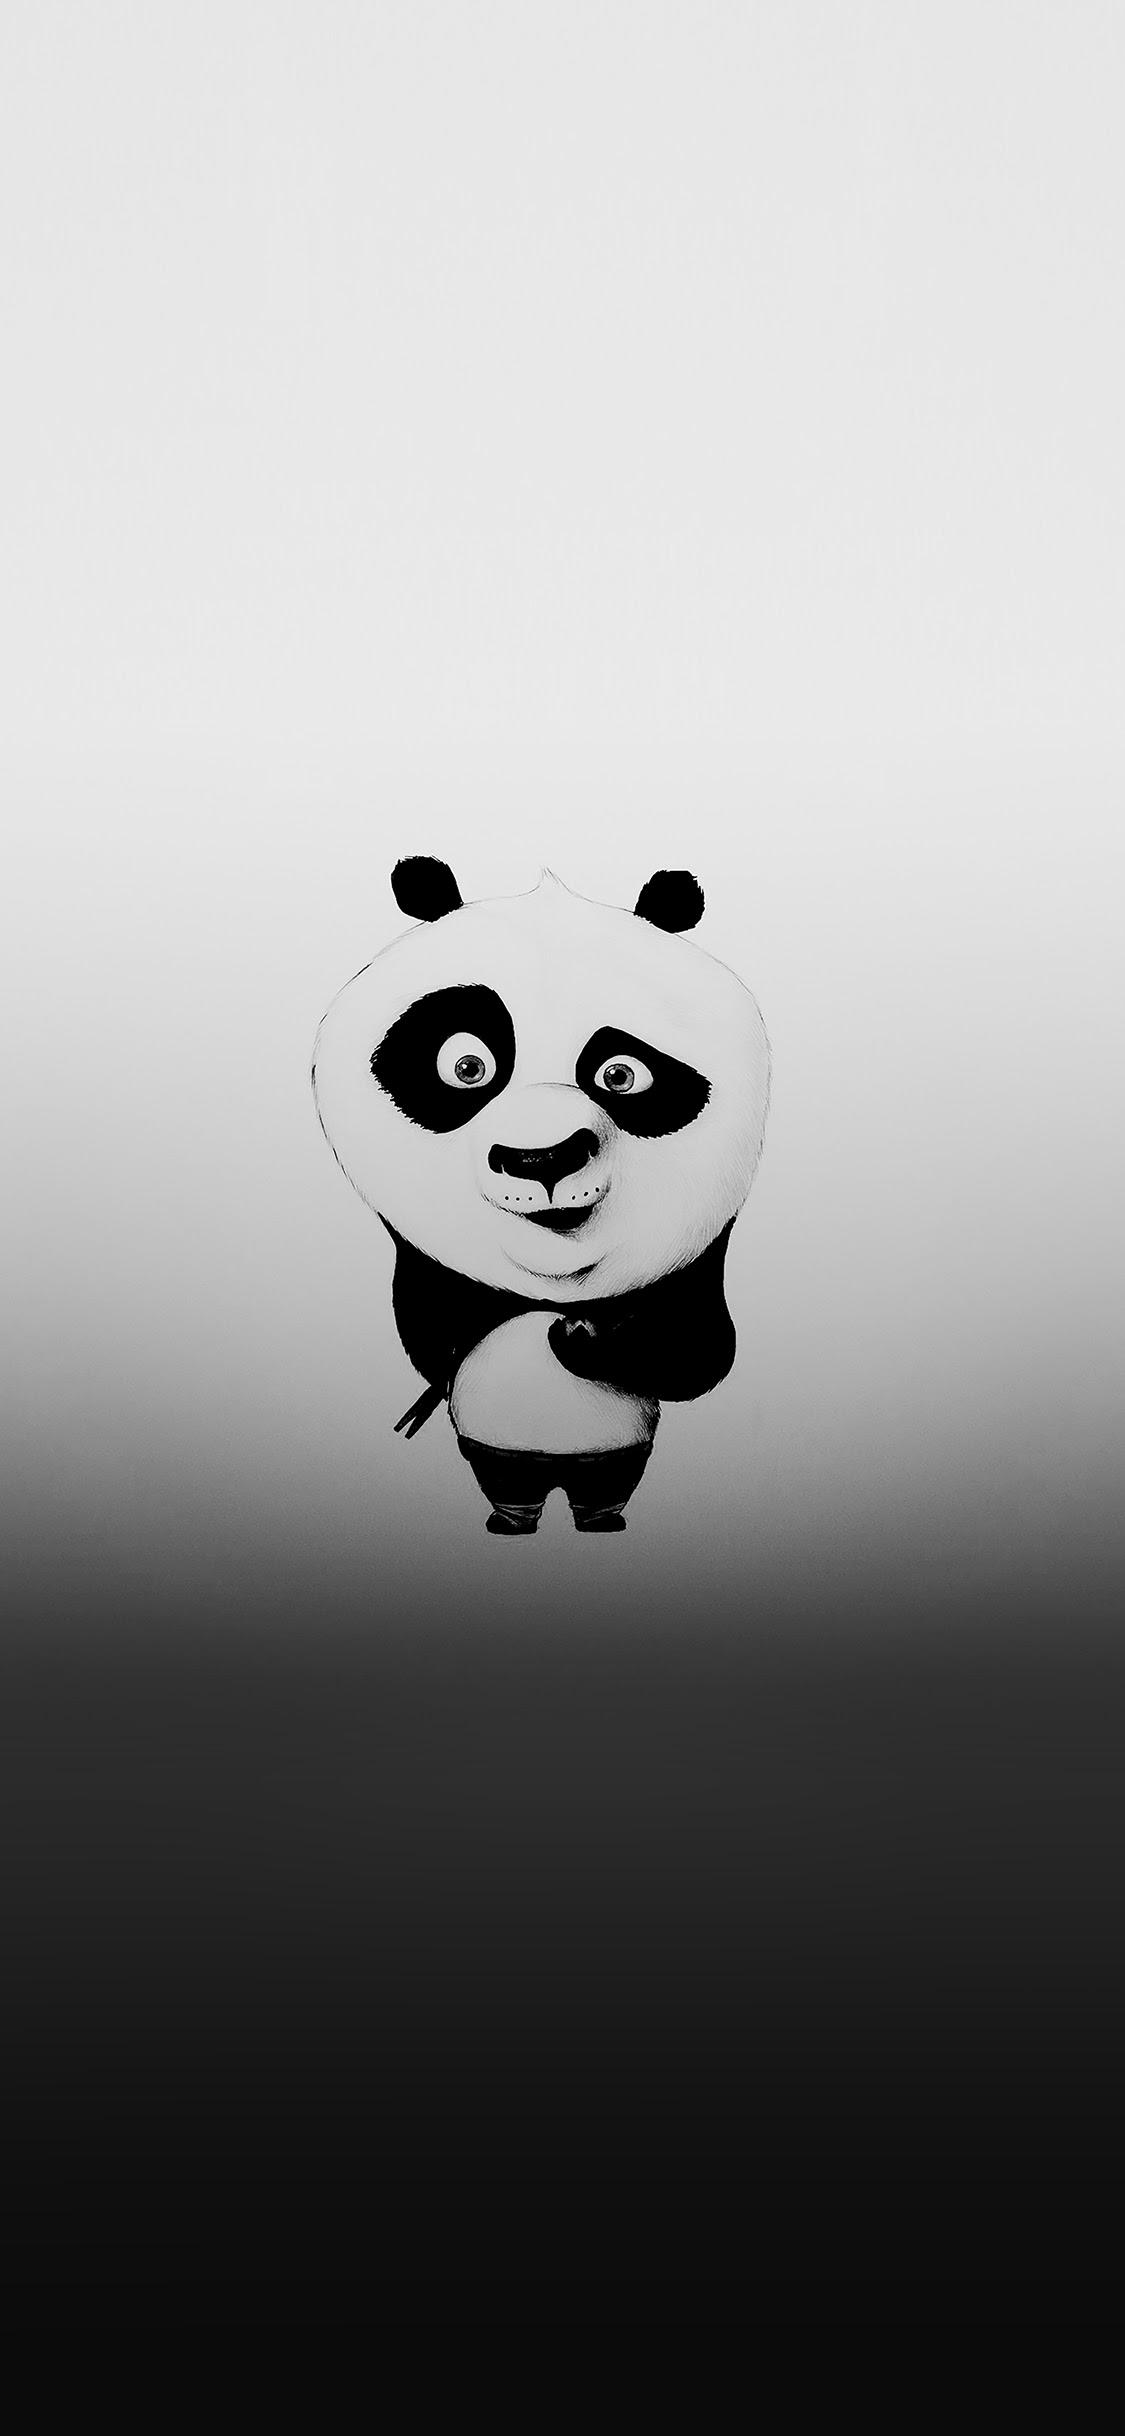 Kung Fu Panda Hd Wallpaper For Iphone Wallpaper Iphone